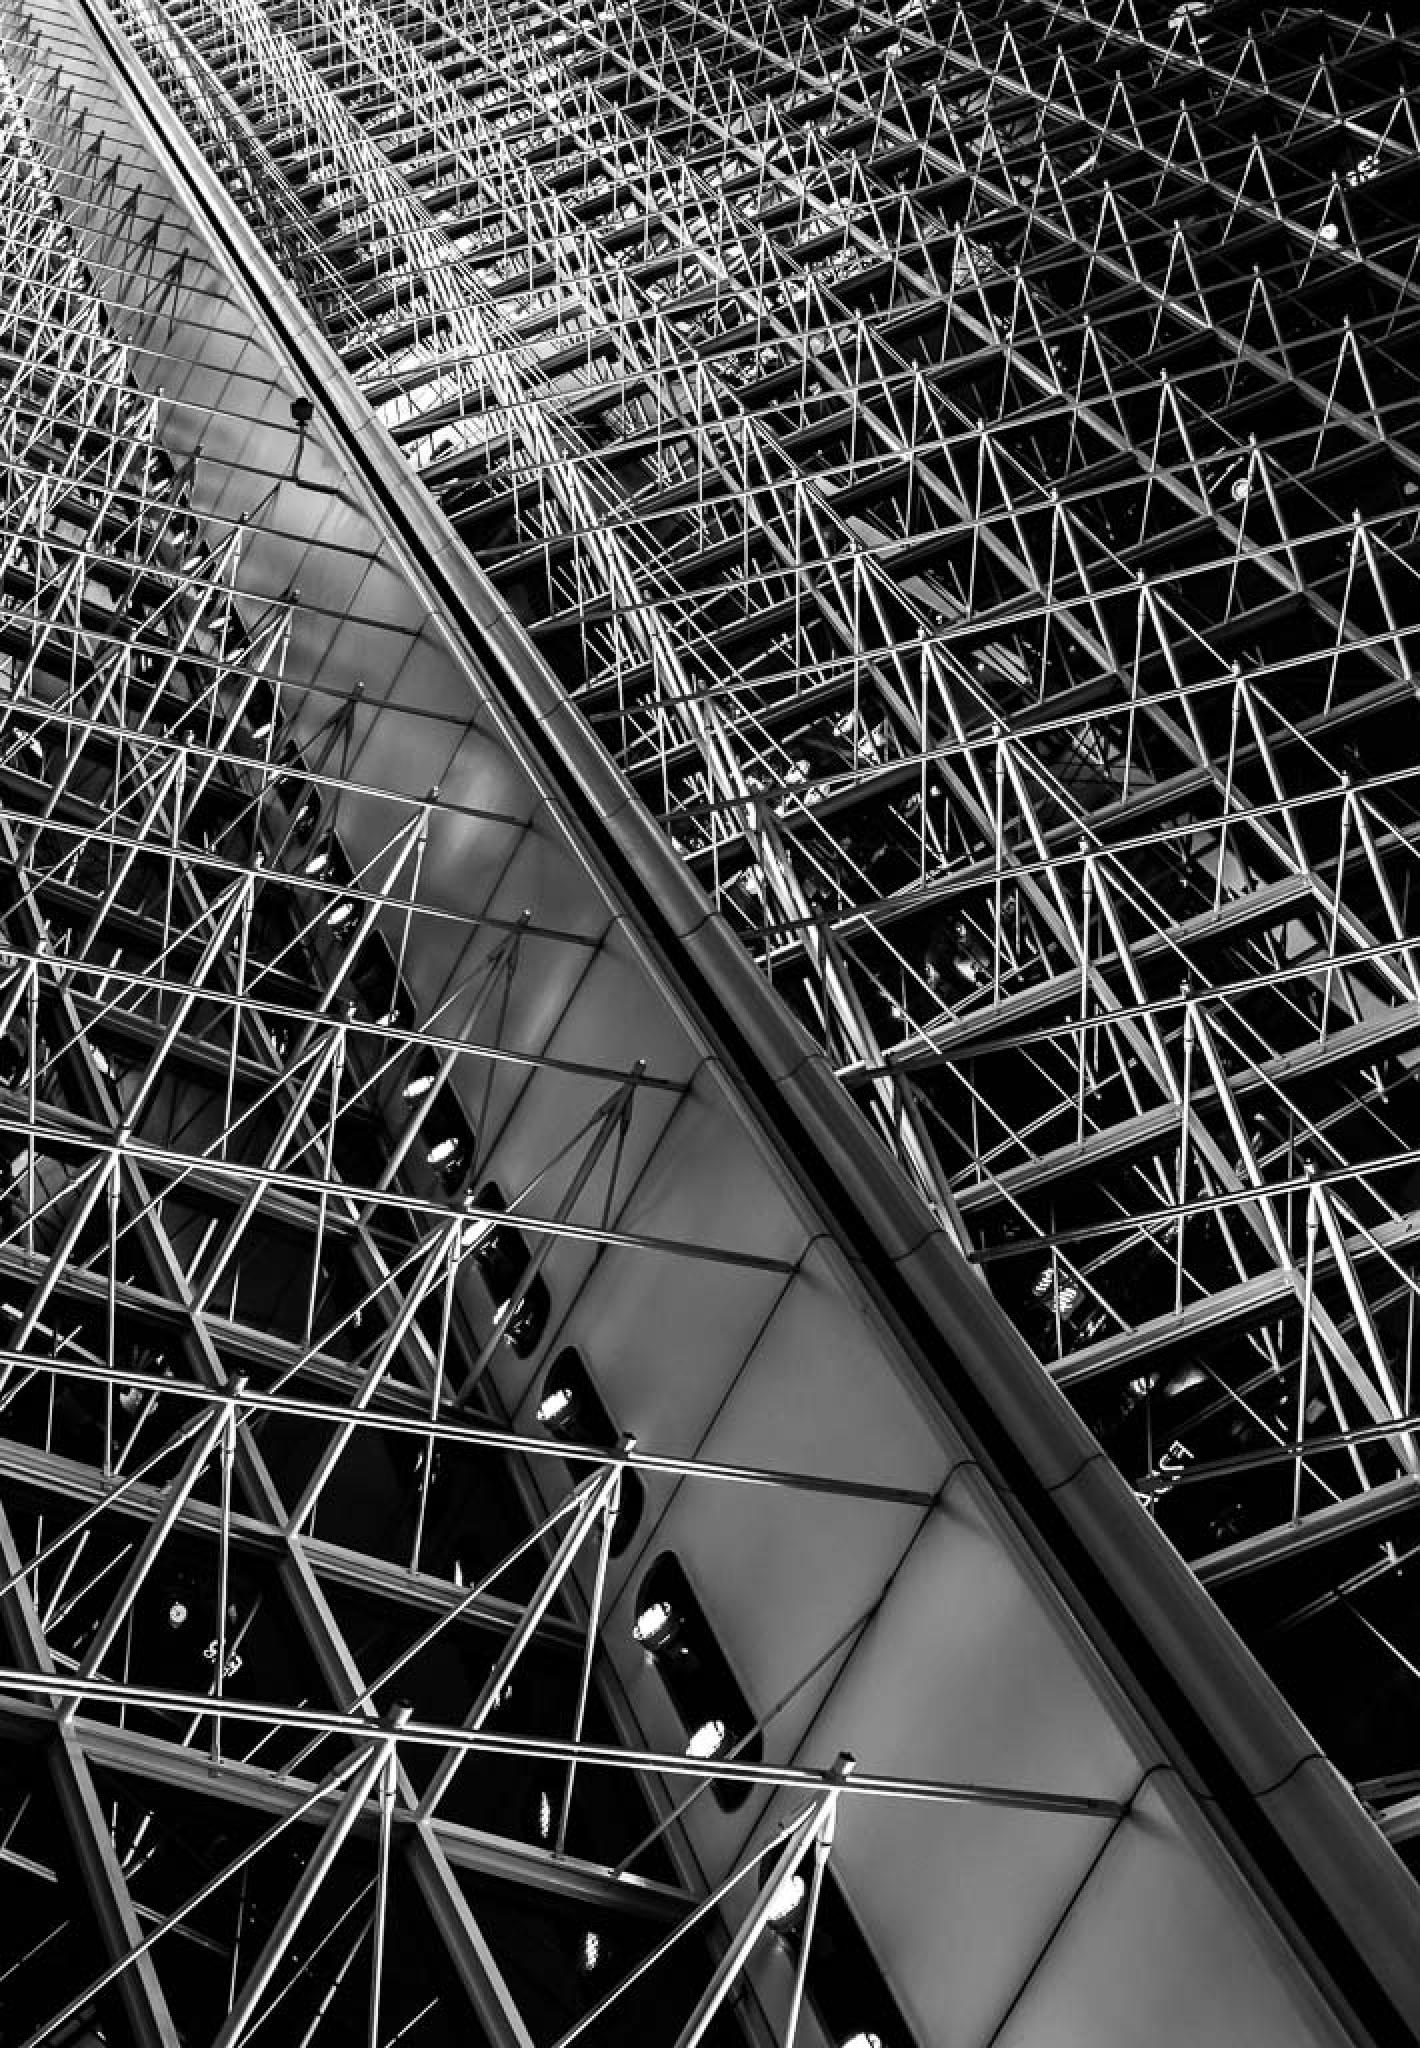 Ceiling on Charles de Gaulle airport - part 3 by Frédéric Masure